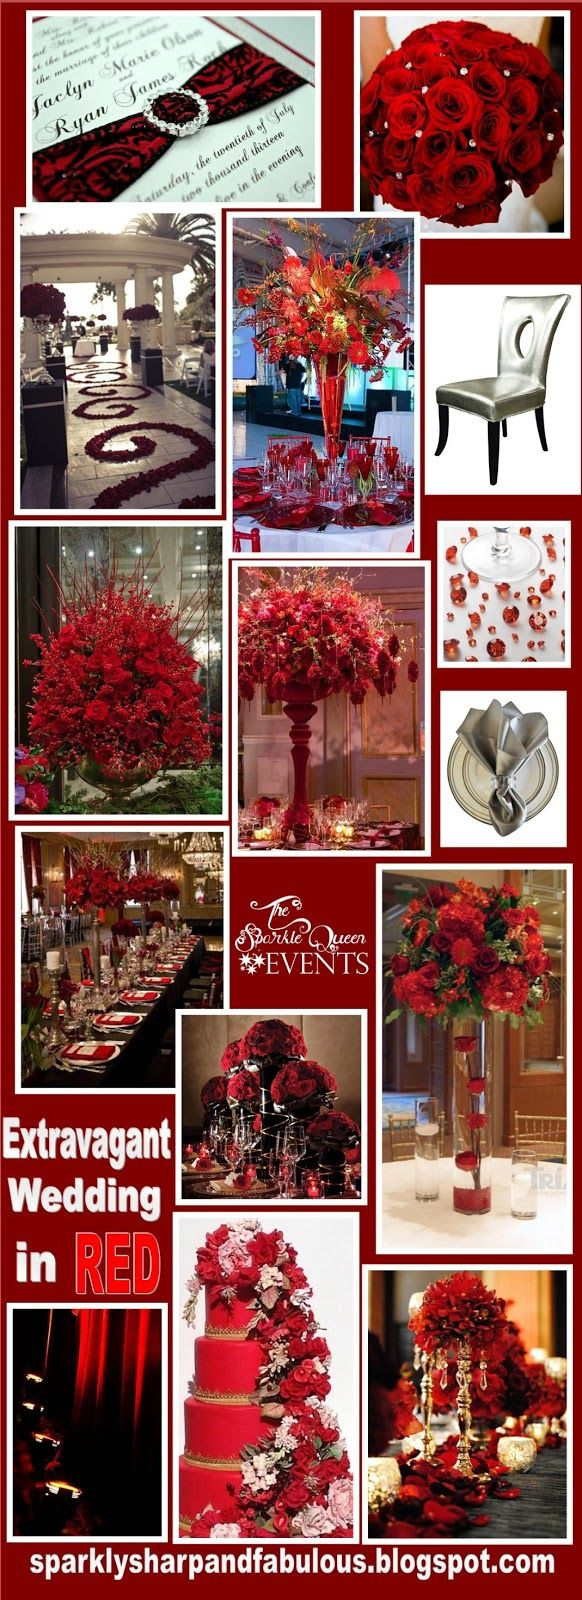 Extravagant Wedding in Red.